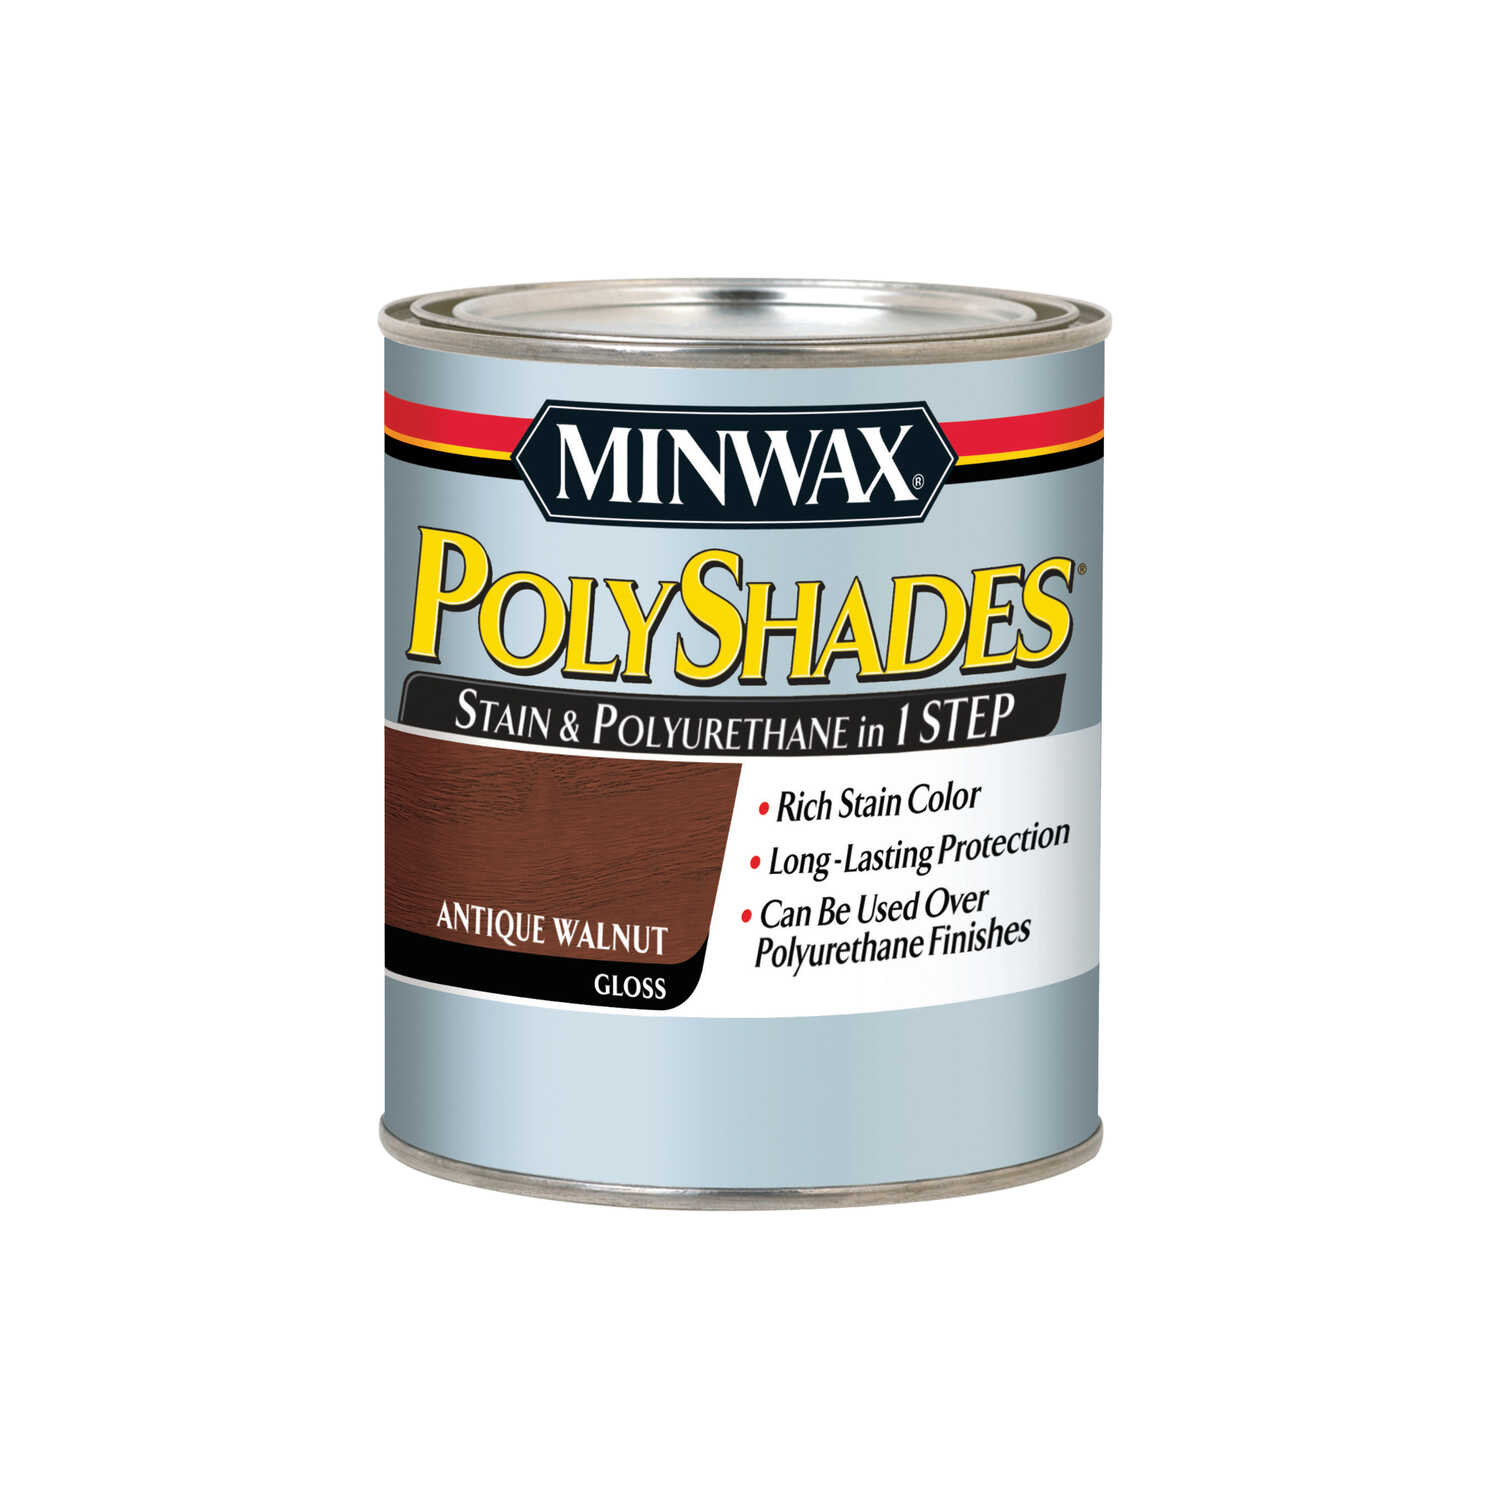 Minwax  PolyShades  Semi-Transparent  Gloss  Antique Walnut  Oil-Based  Stain  1 qt.